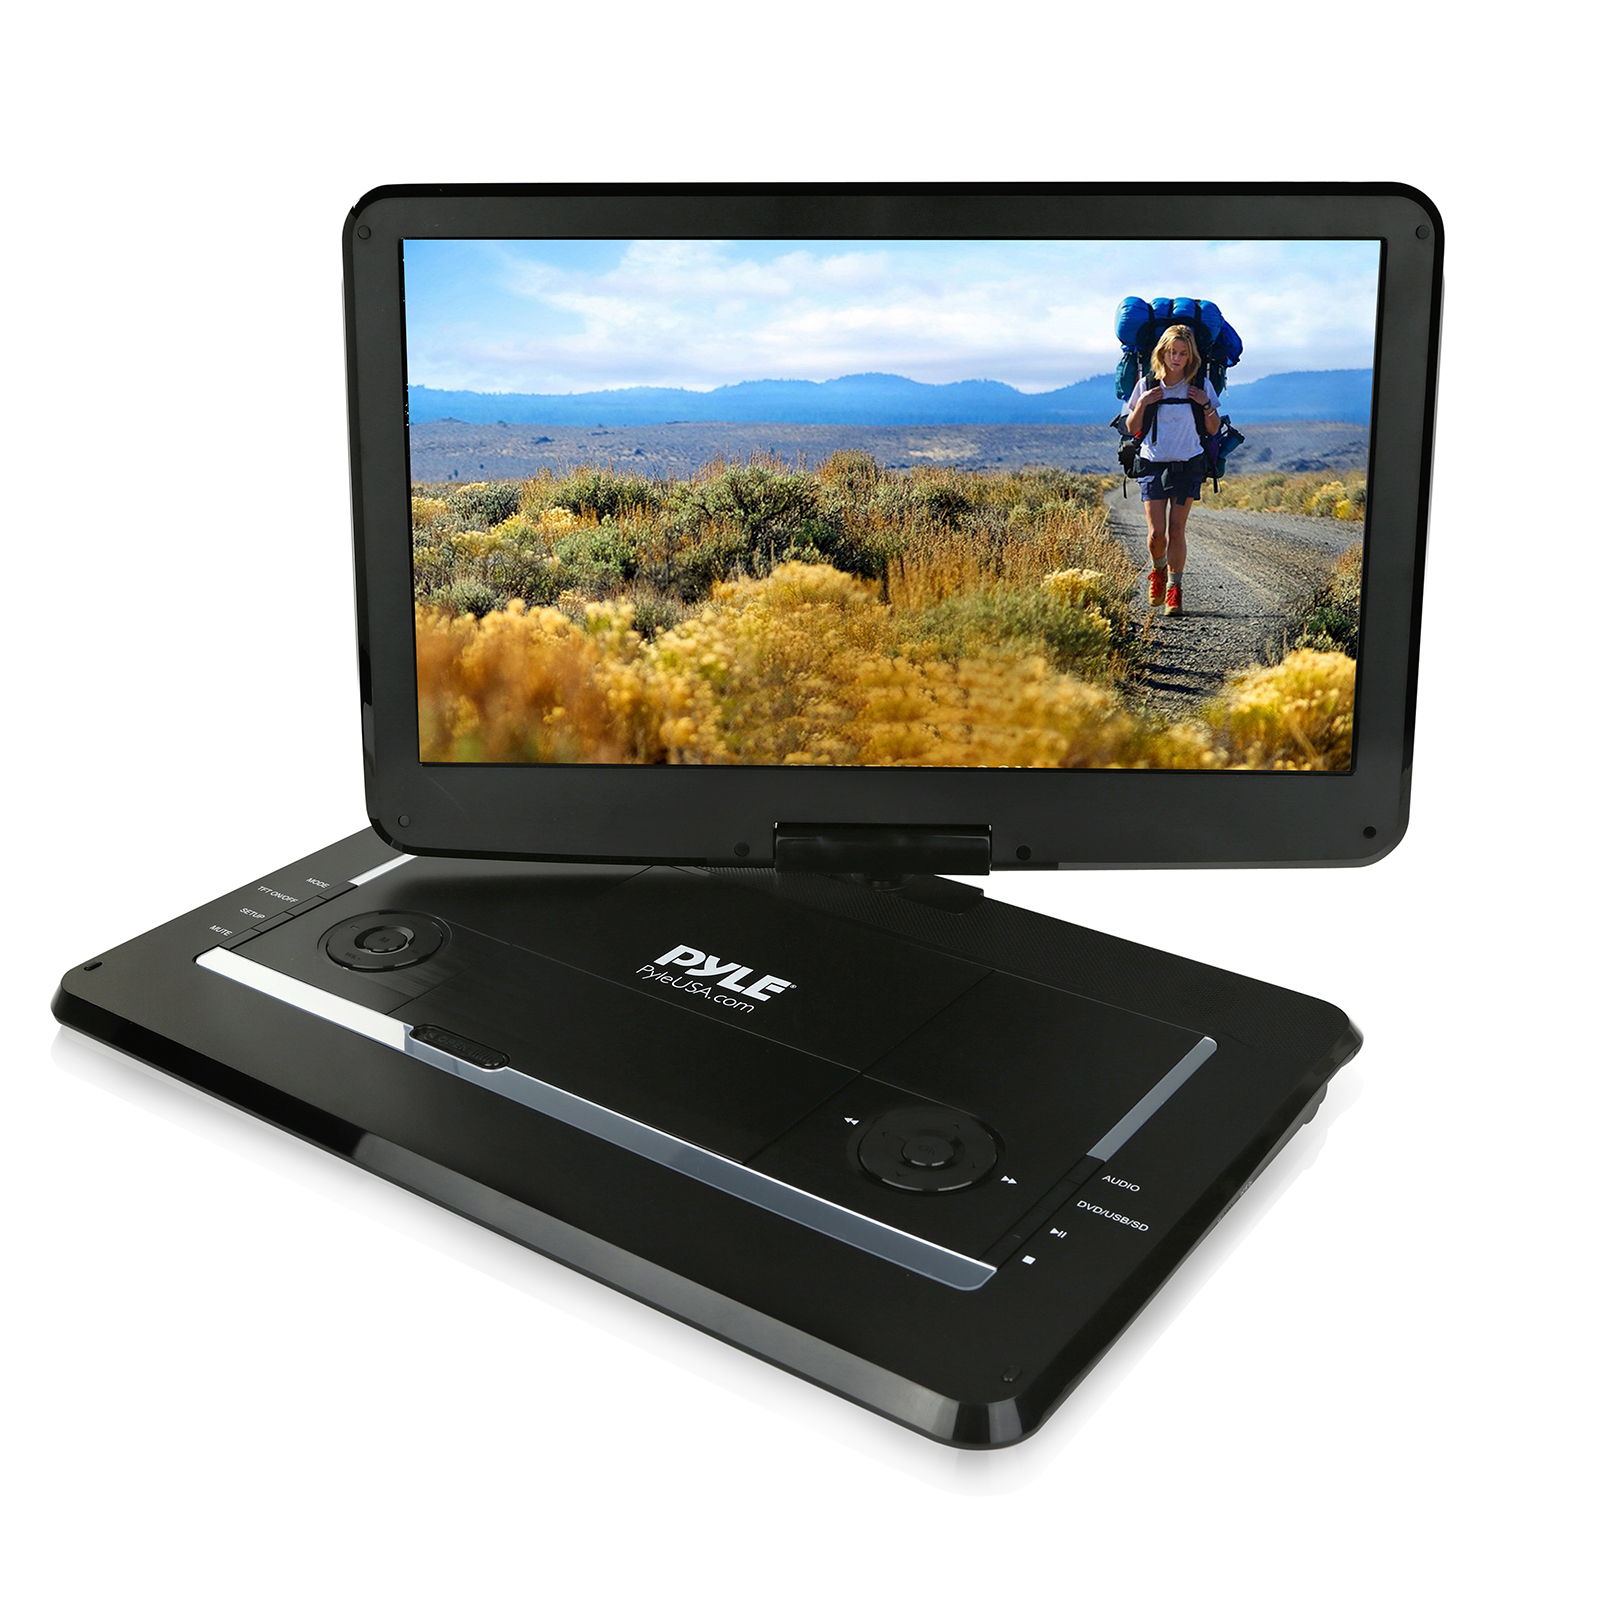 "15"" Portable CD DVD Player, HD Widescreen Display, Built-in Battery, USB SD Card Memory Readers by Pyle"